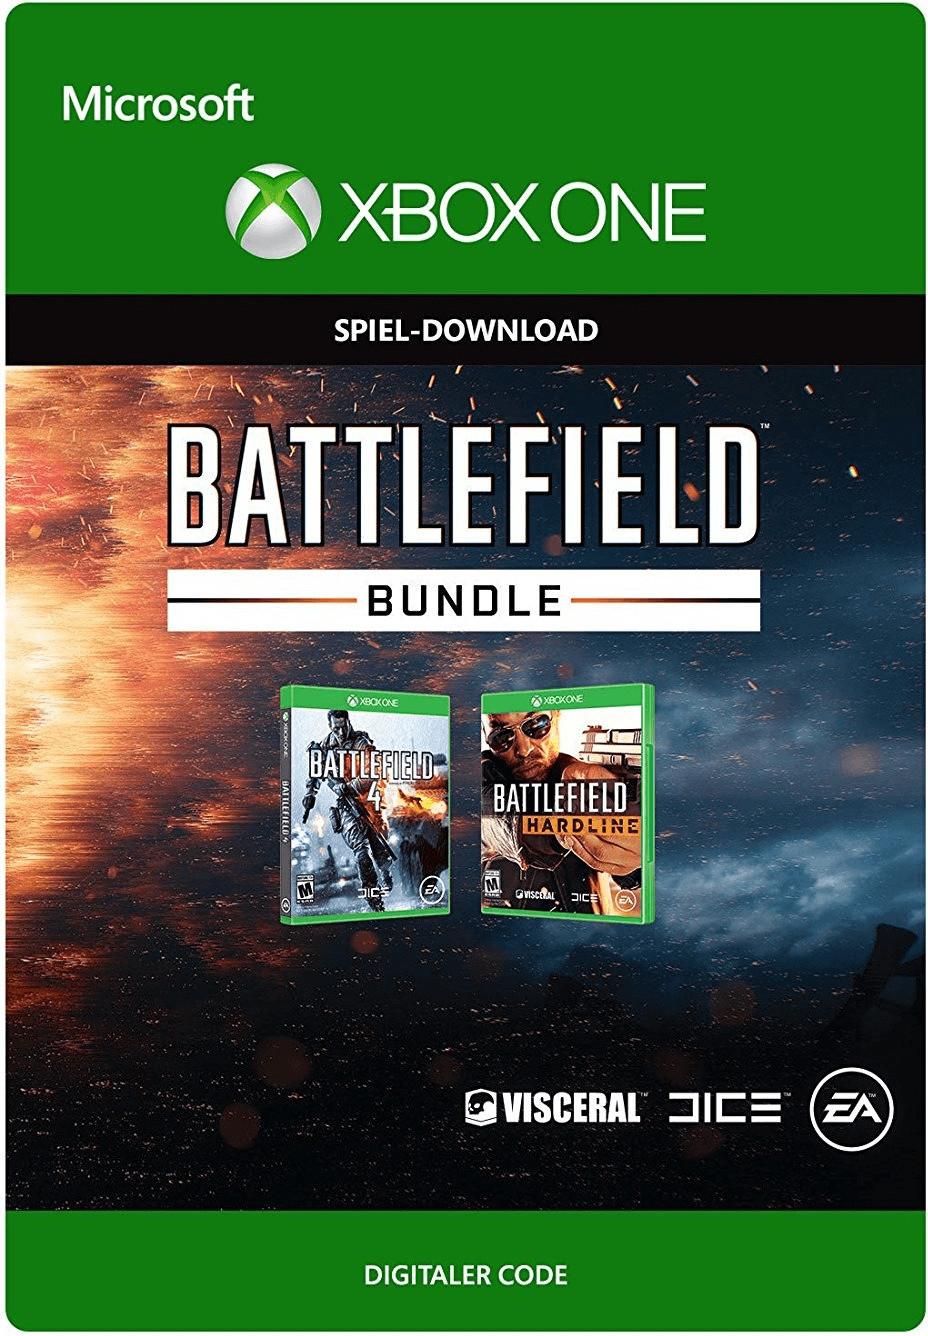 Battlefield: Bundle (Xbox One)